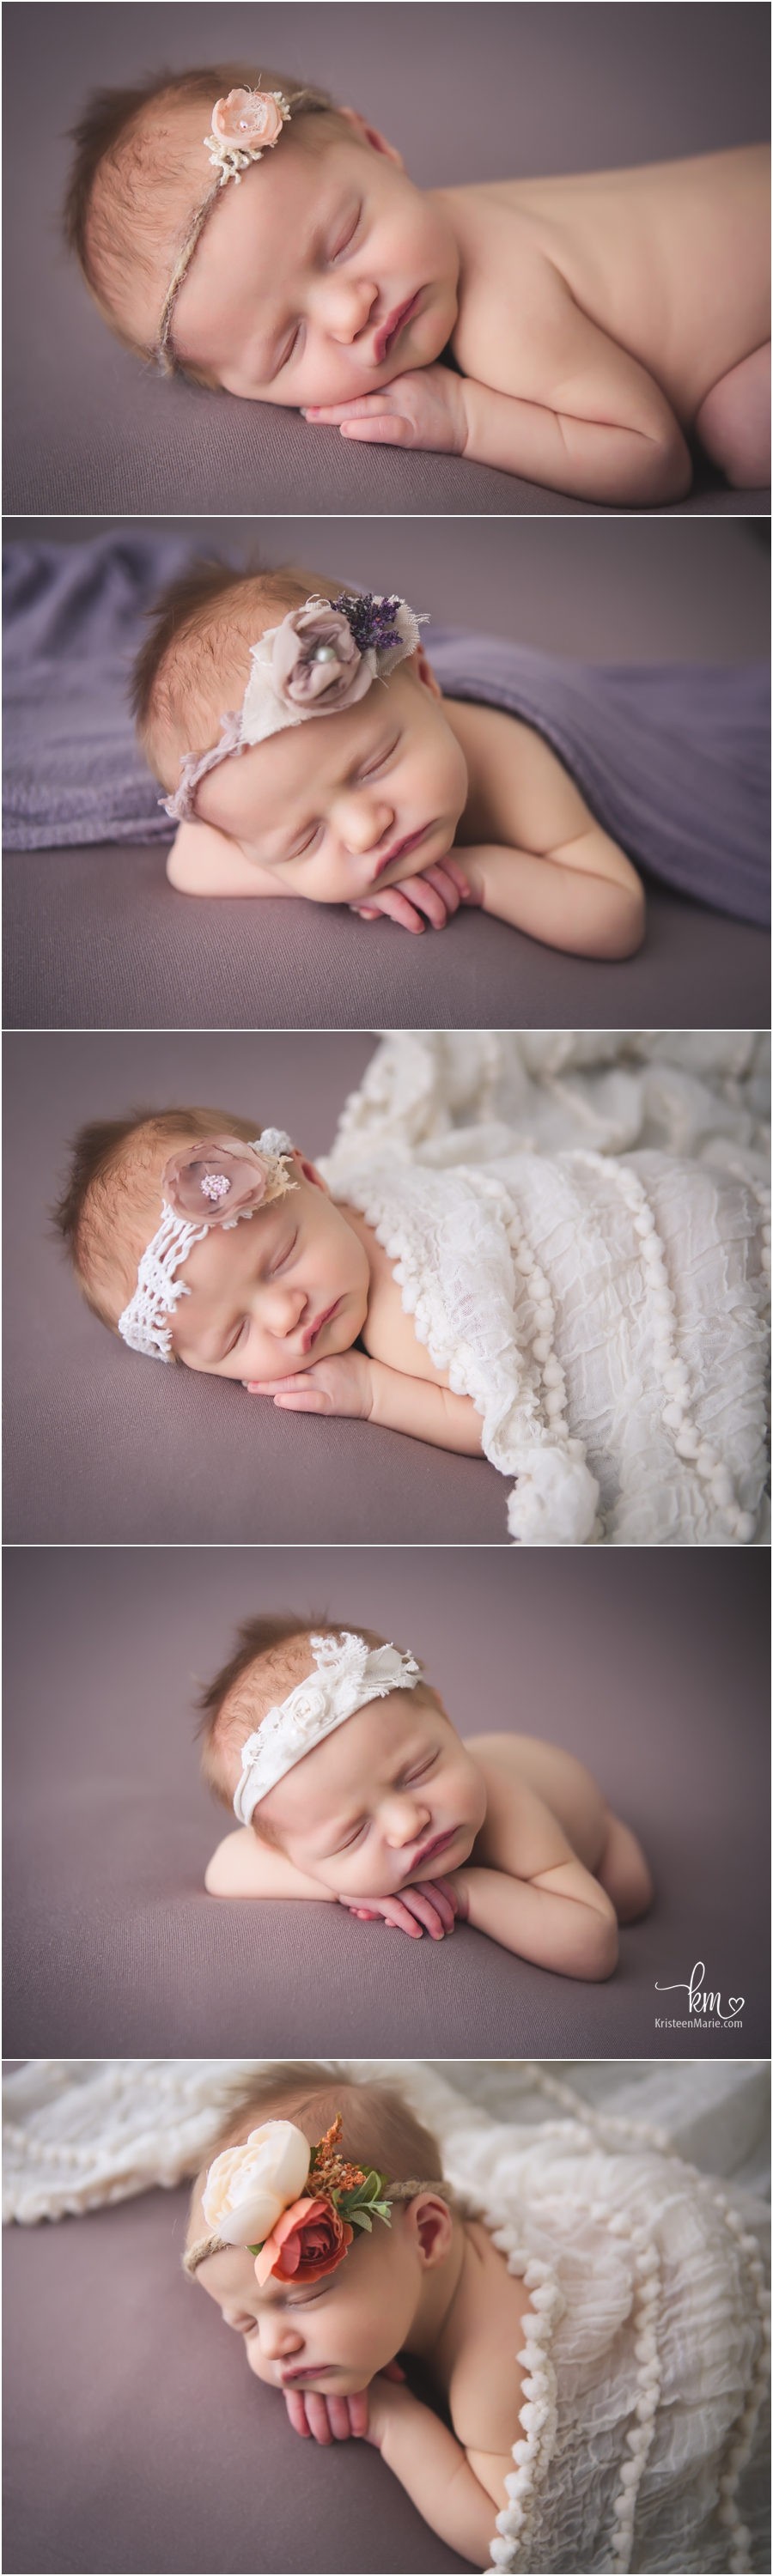 Westfield Newborn photography - baby girl in purple and cream